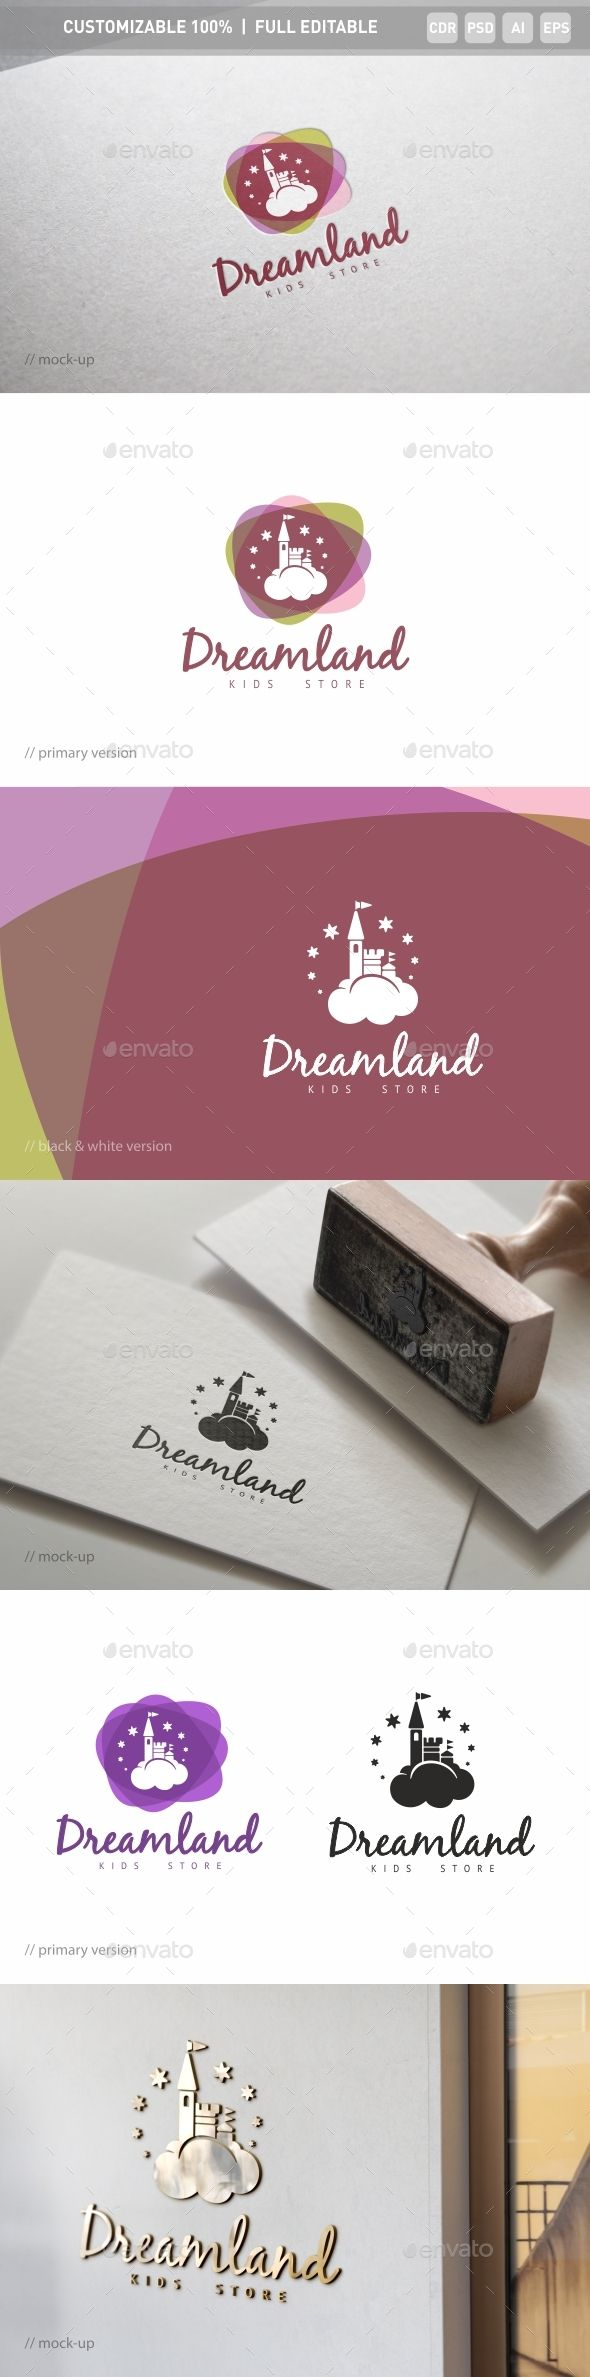 Fairyland Logo Template — Photoshop PSD #fairytail #magic • Available here → https://graphicriver.net/item/fairyland-logo-template/17847204?ref=pxcr